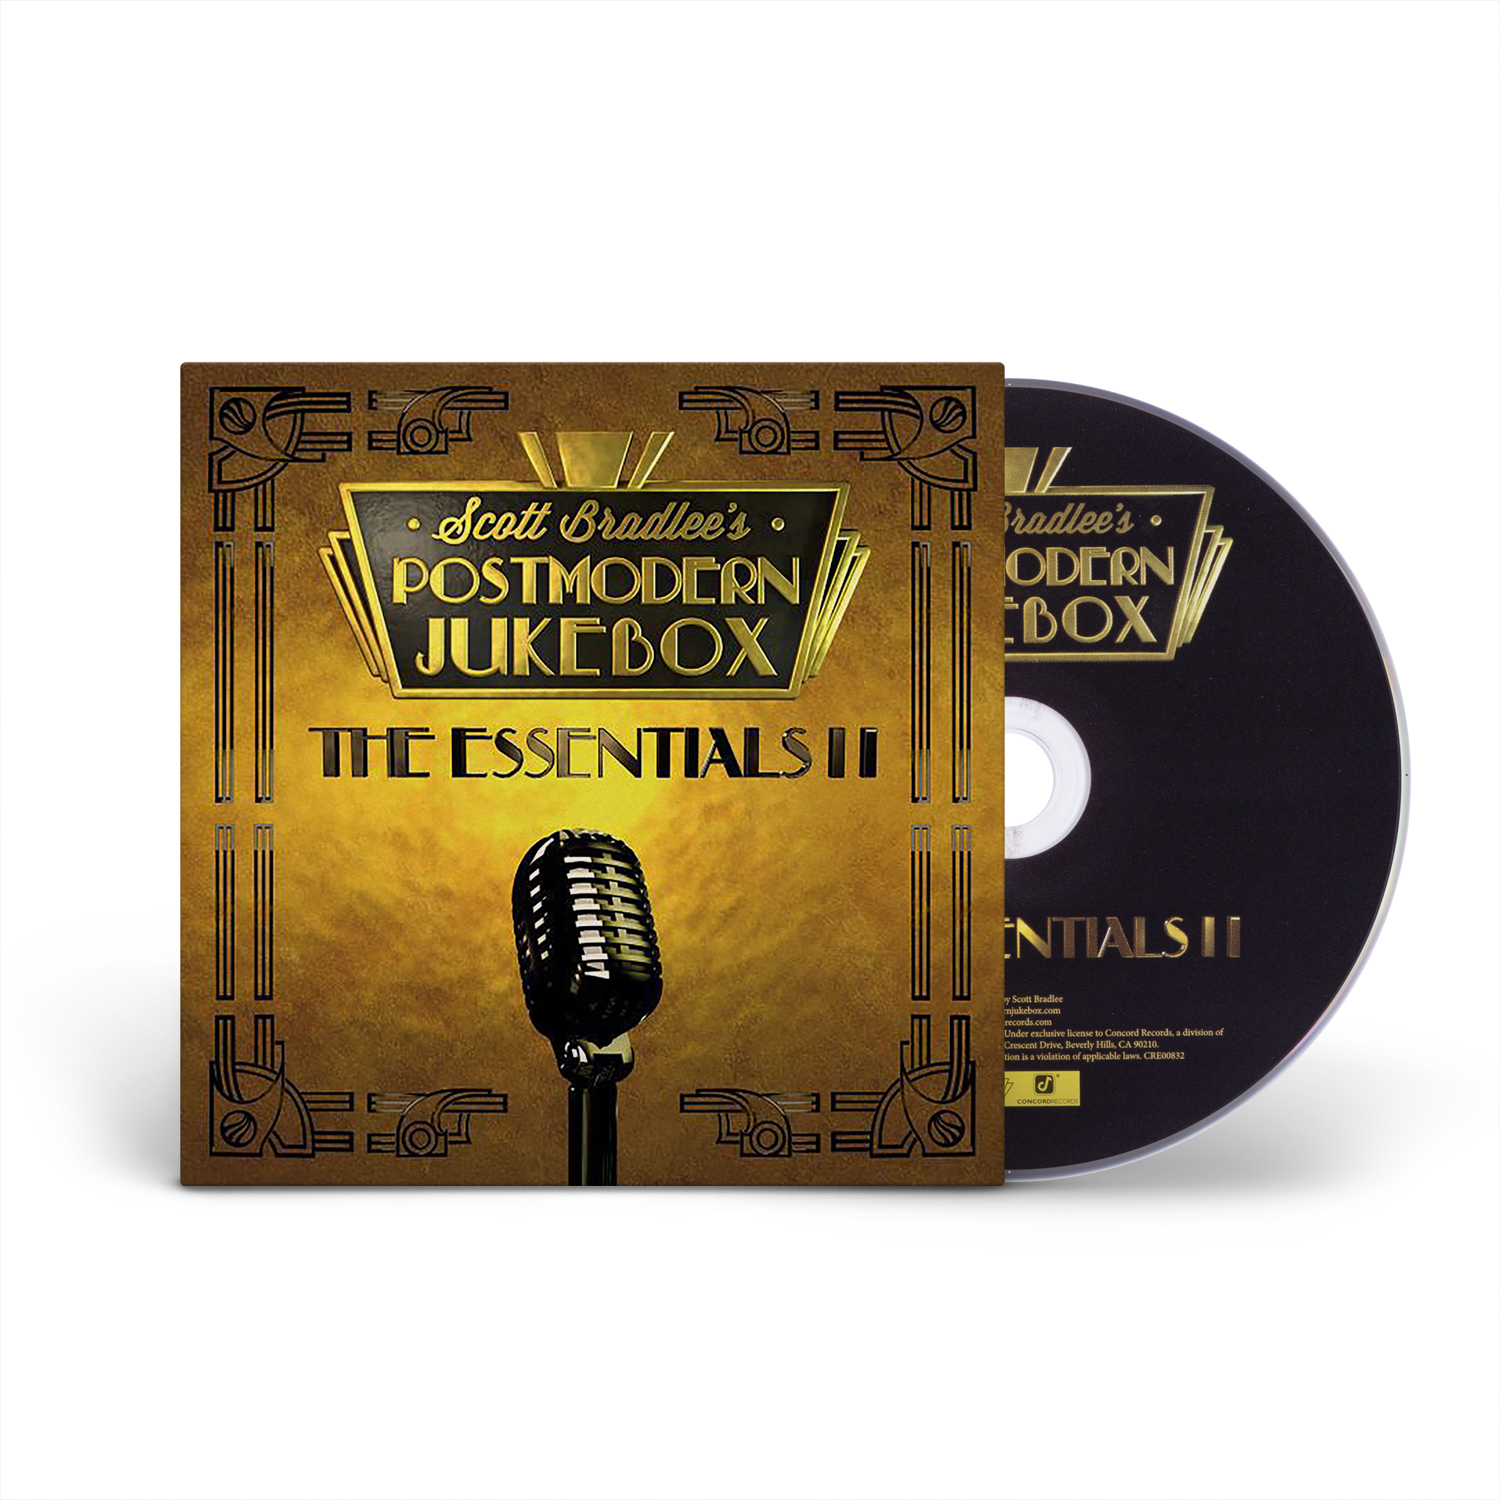 The Essentials II Album [CD]